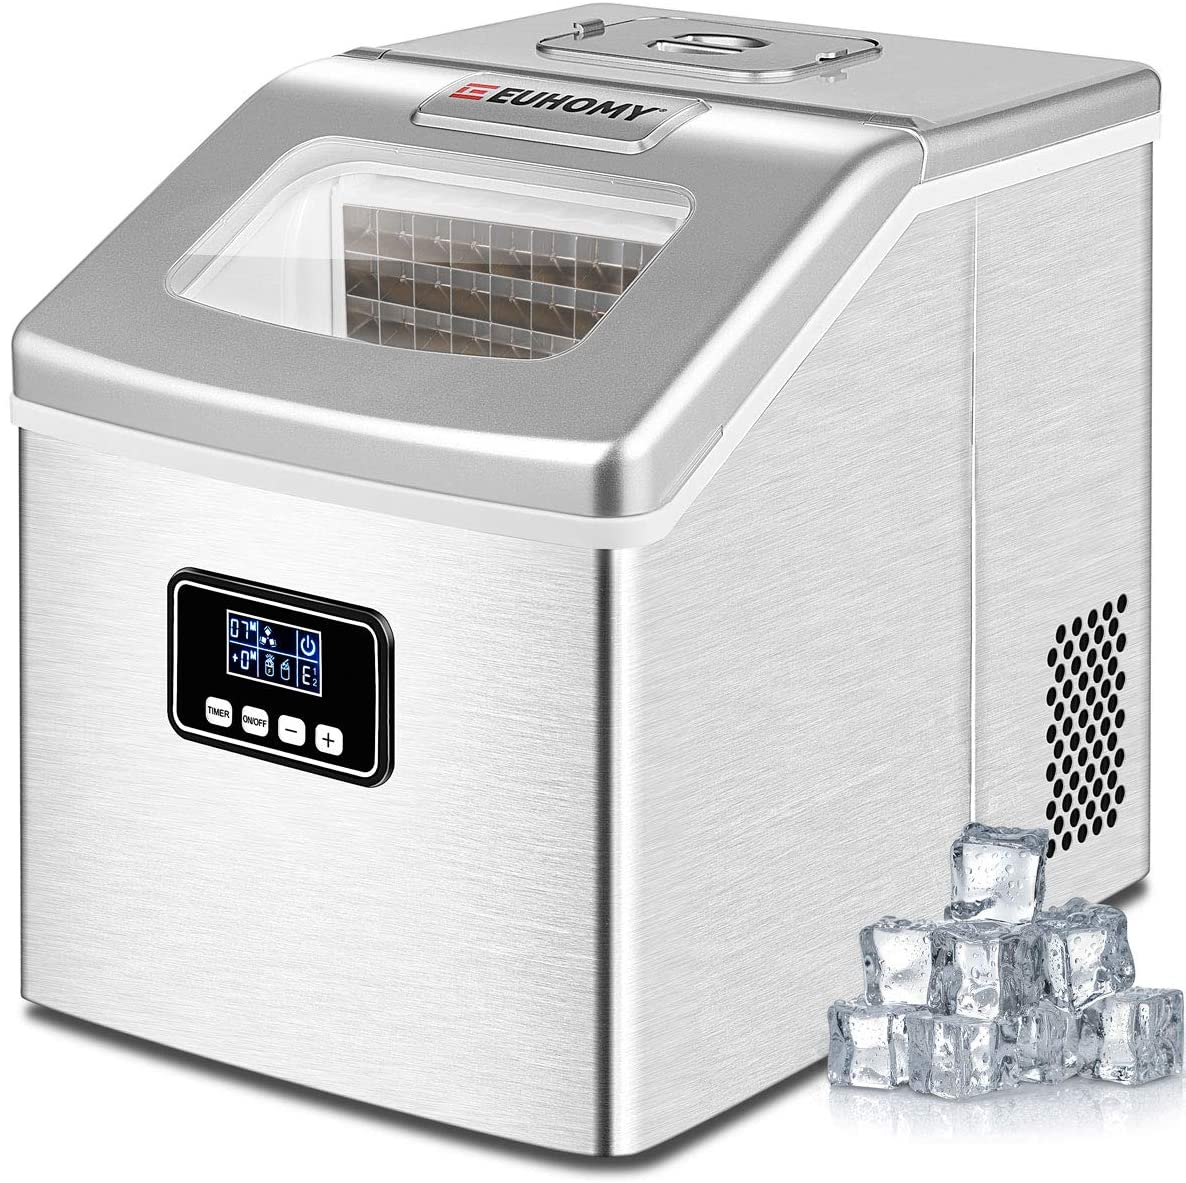 Euhomy Countertop Ice Maker Machine